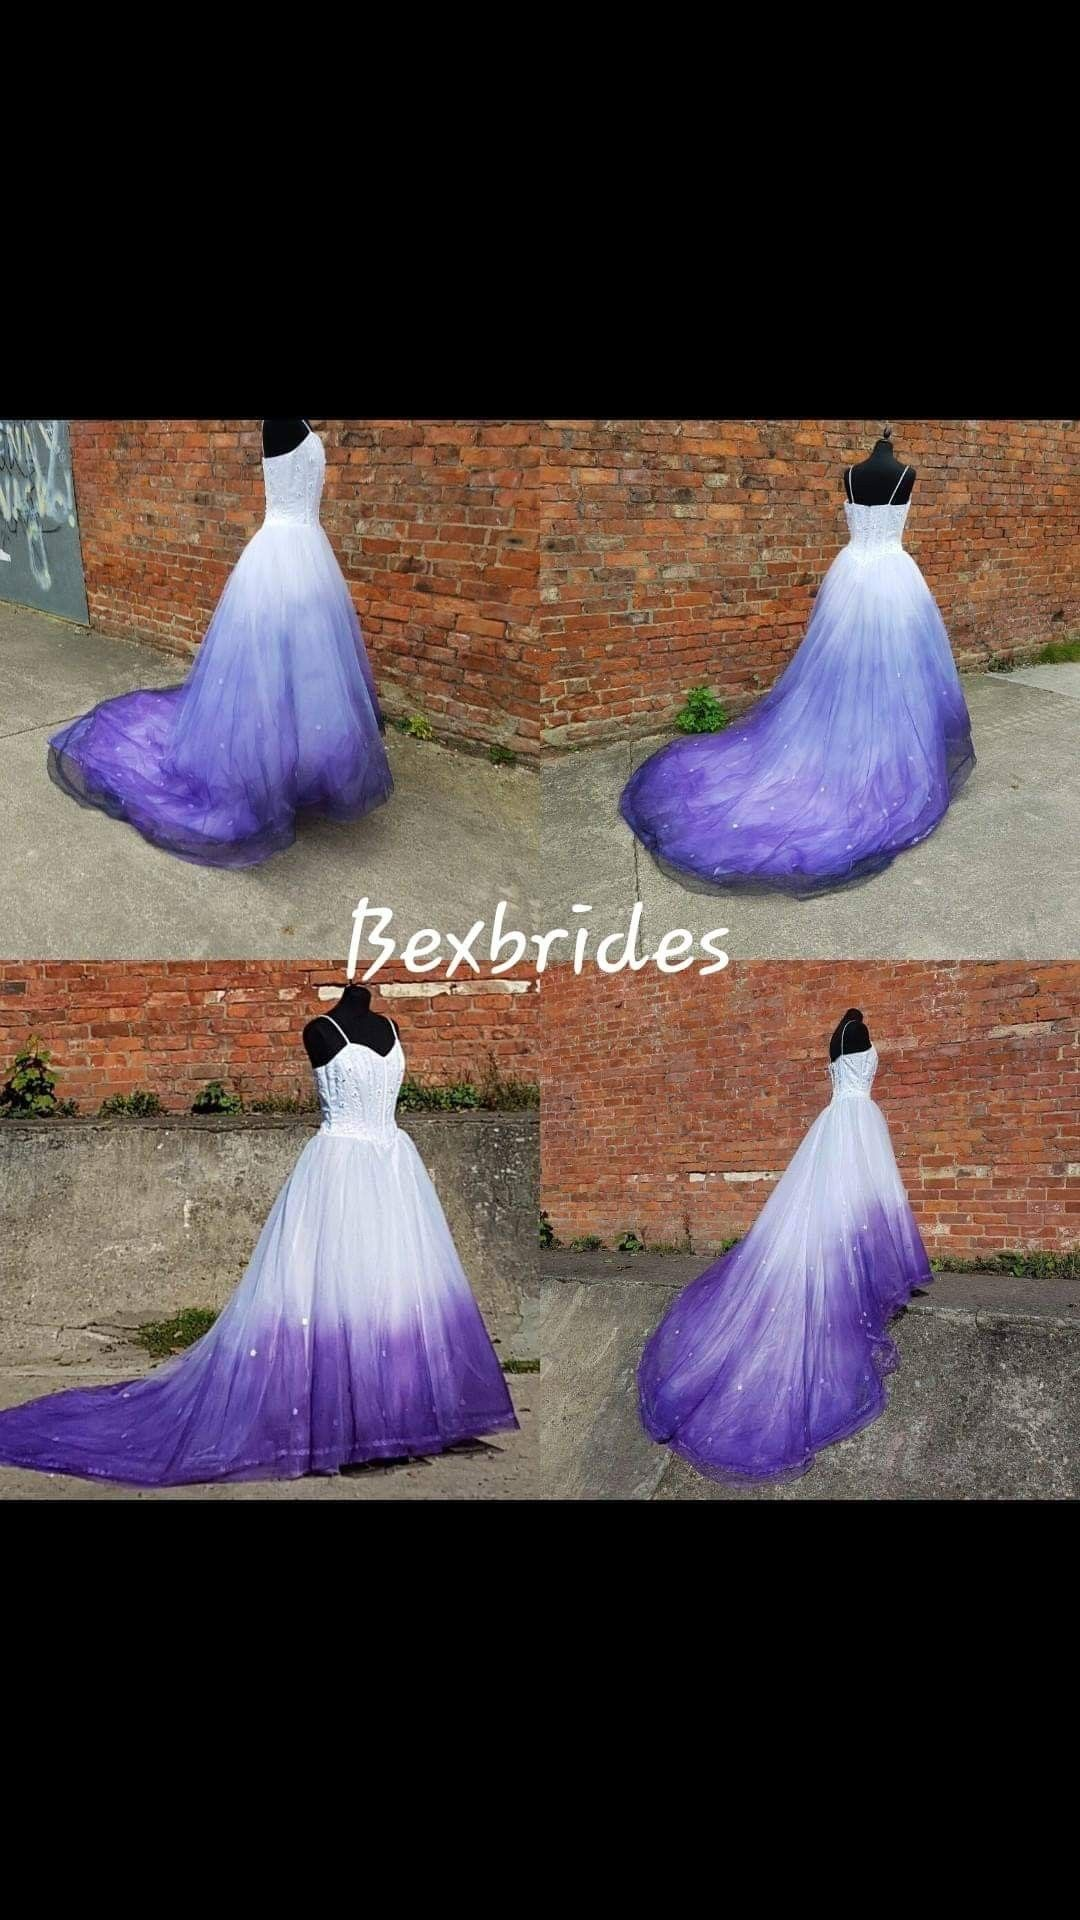 Hand Ombre Vintage Gown By Bexbrides Dip Dye Effect Wedding Dress Purple Wedding Dresses Gowns Dip Dye Wedding Dress Purple Wedding Gown